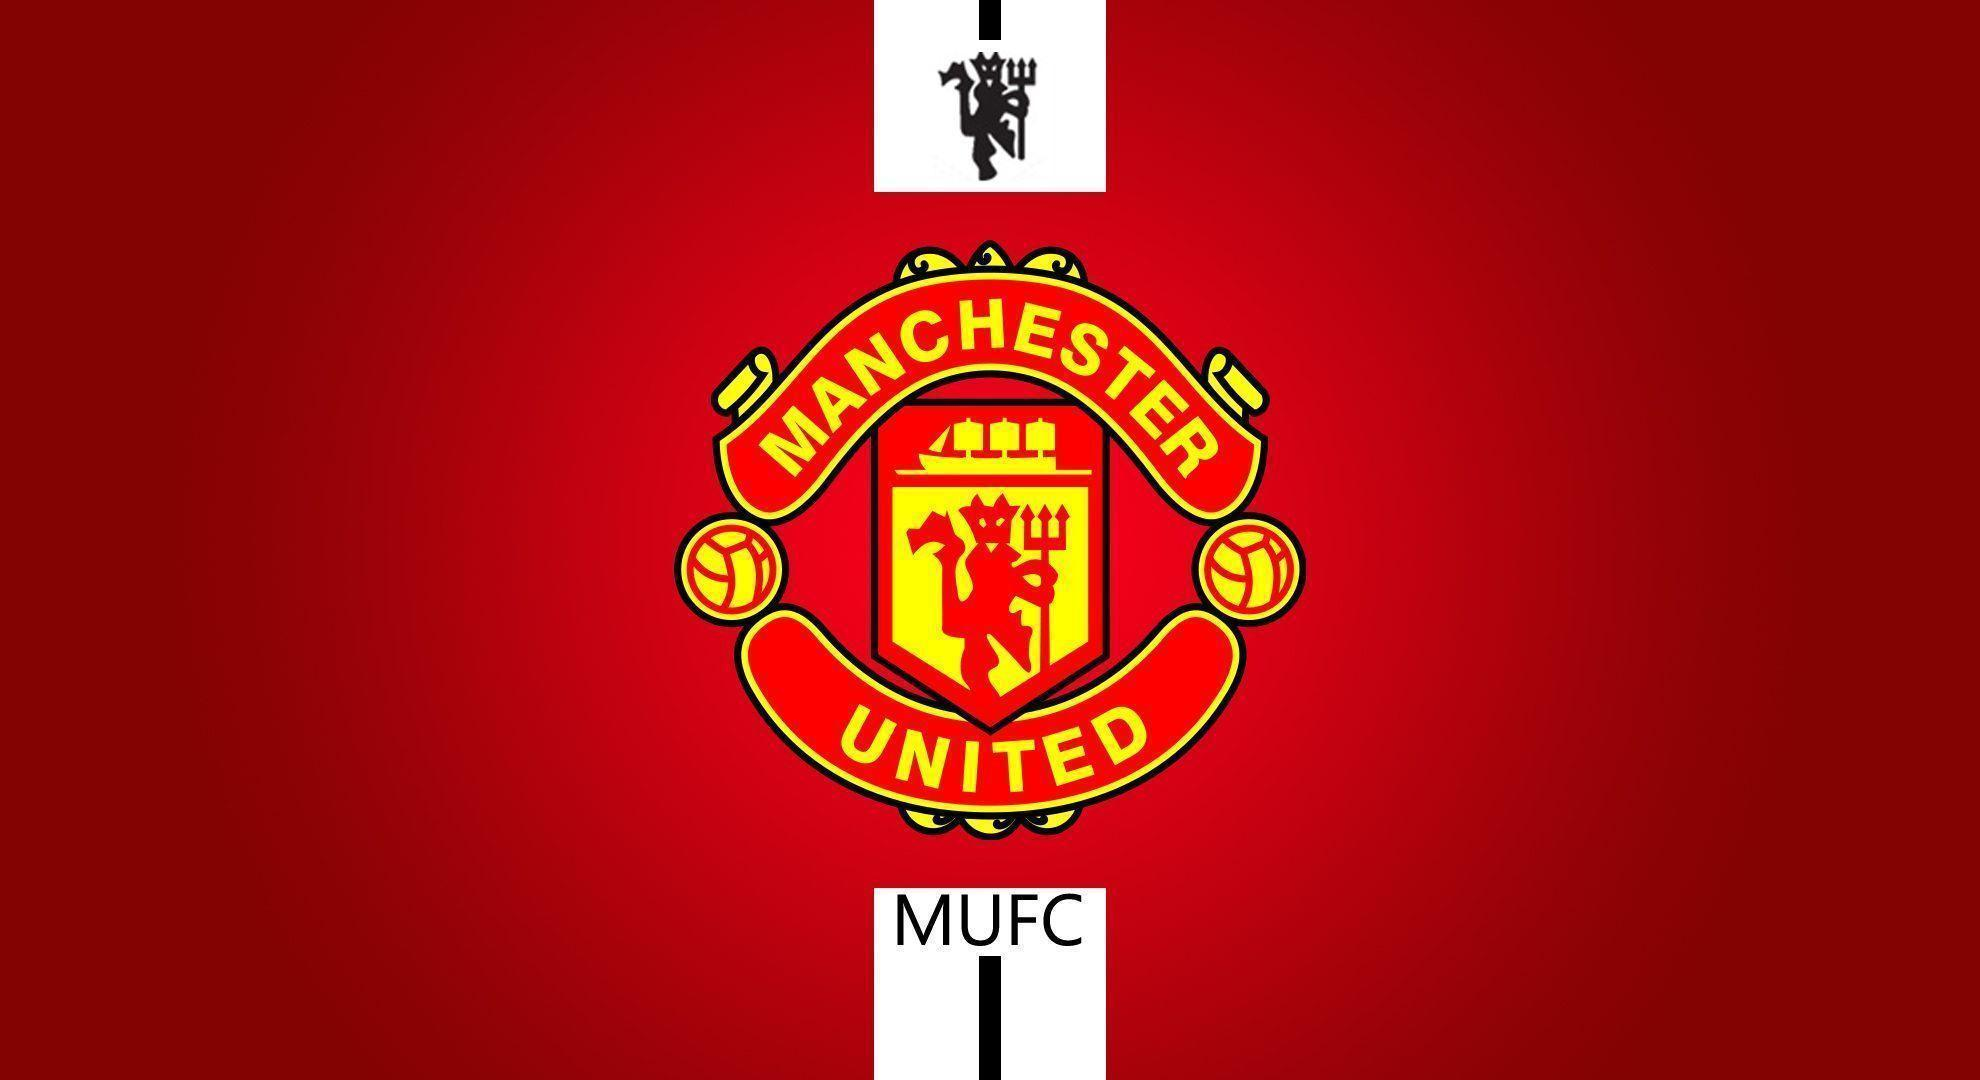 Manchester United Wallpaper Manchester United Logo